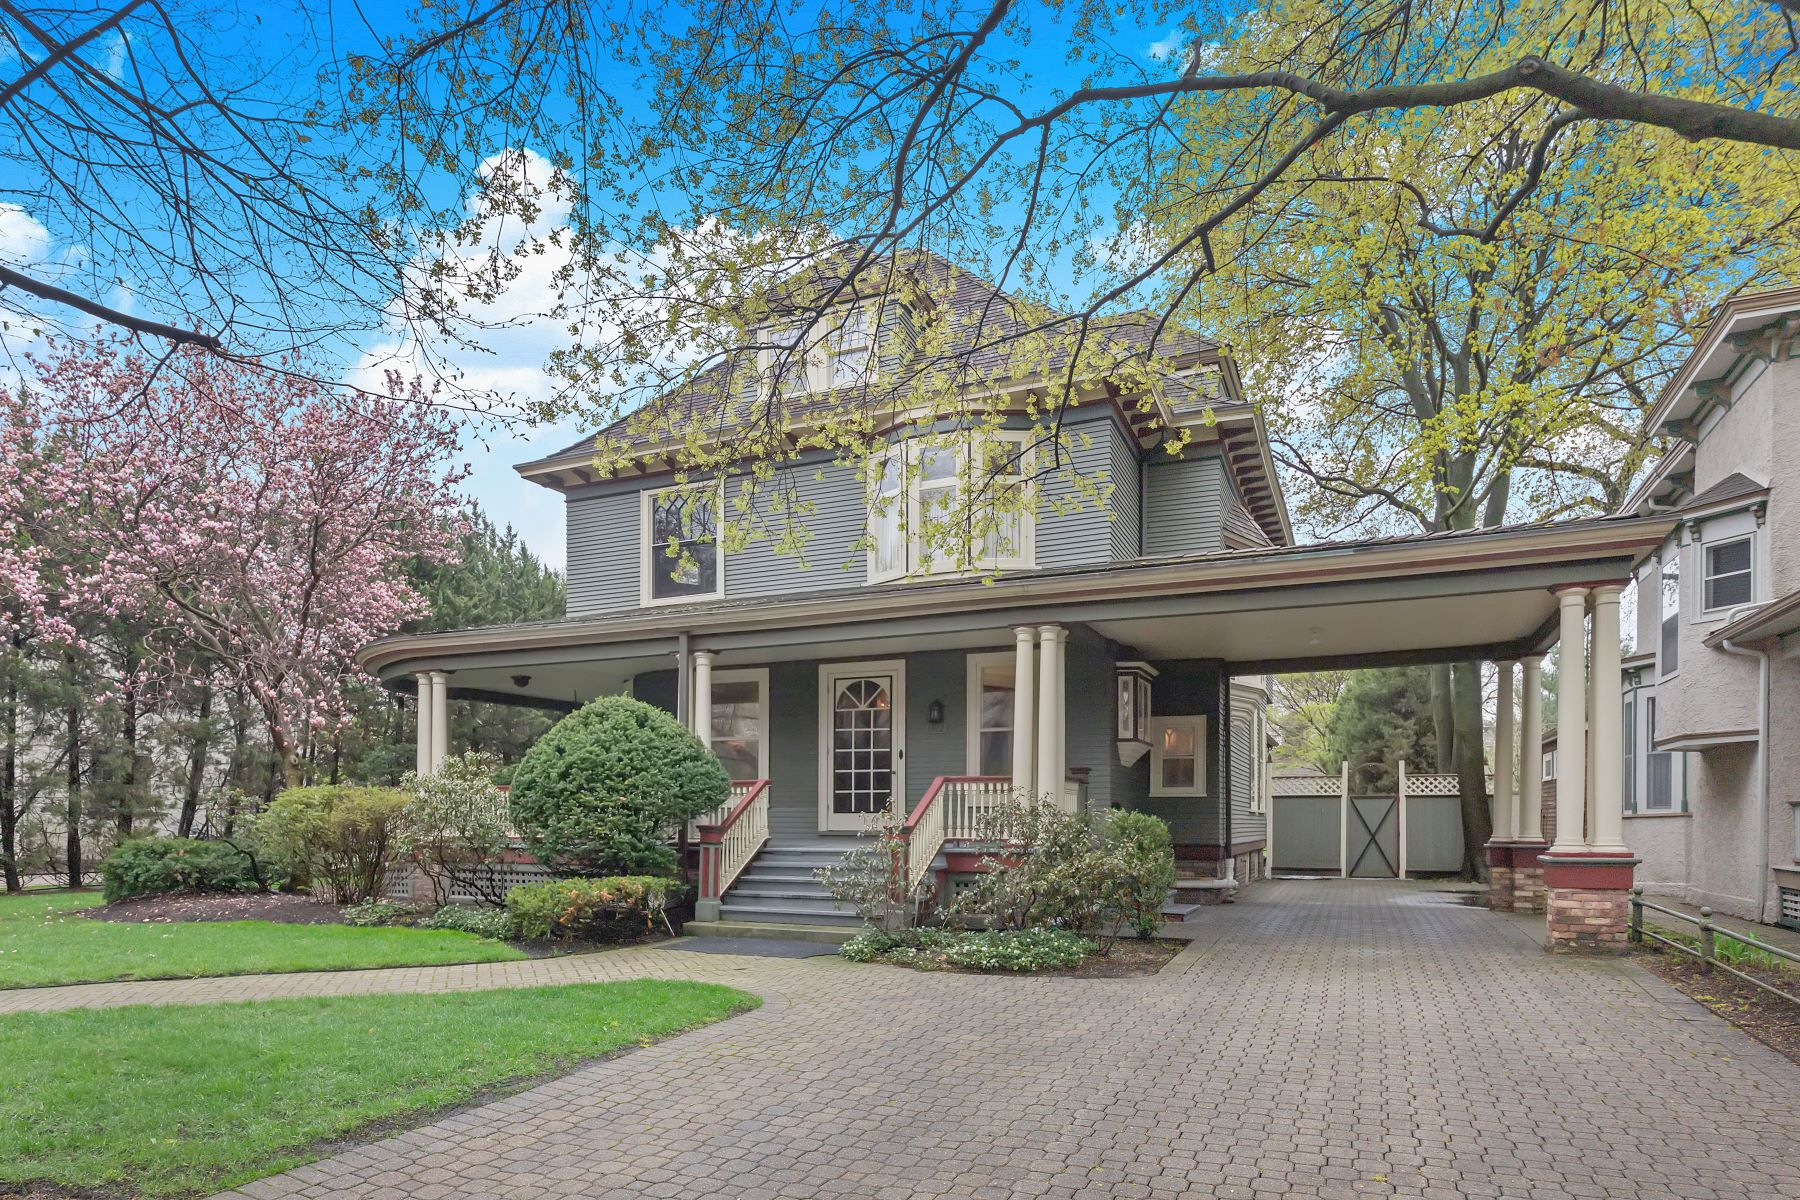 Single Family Home for Active at Beautiful Landmark Home 1312 Church Street Evanston, Illinois 60201 United States